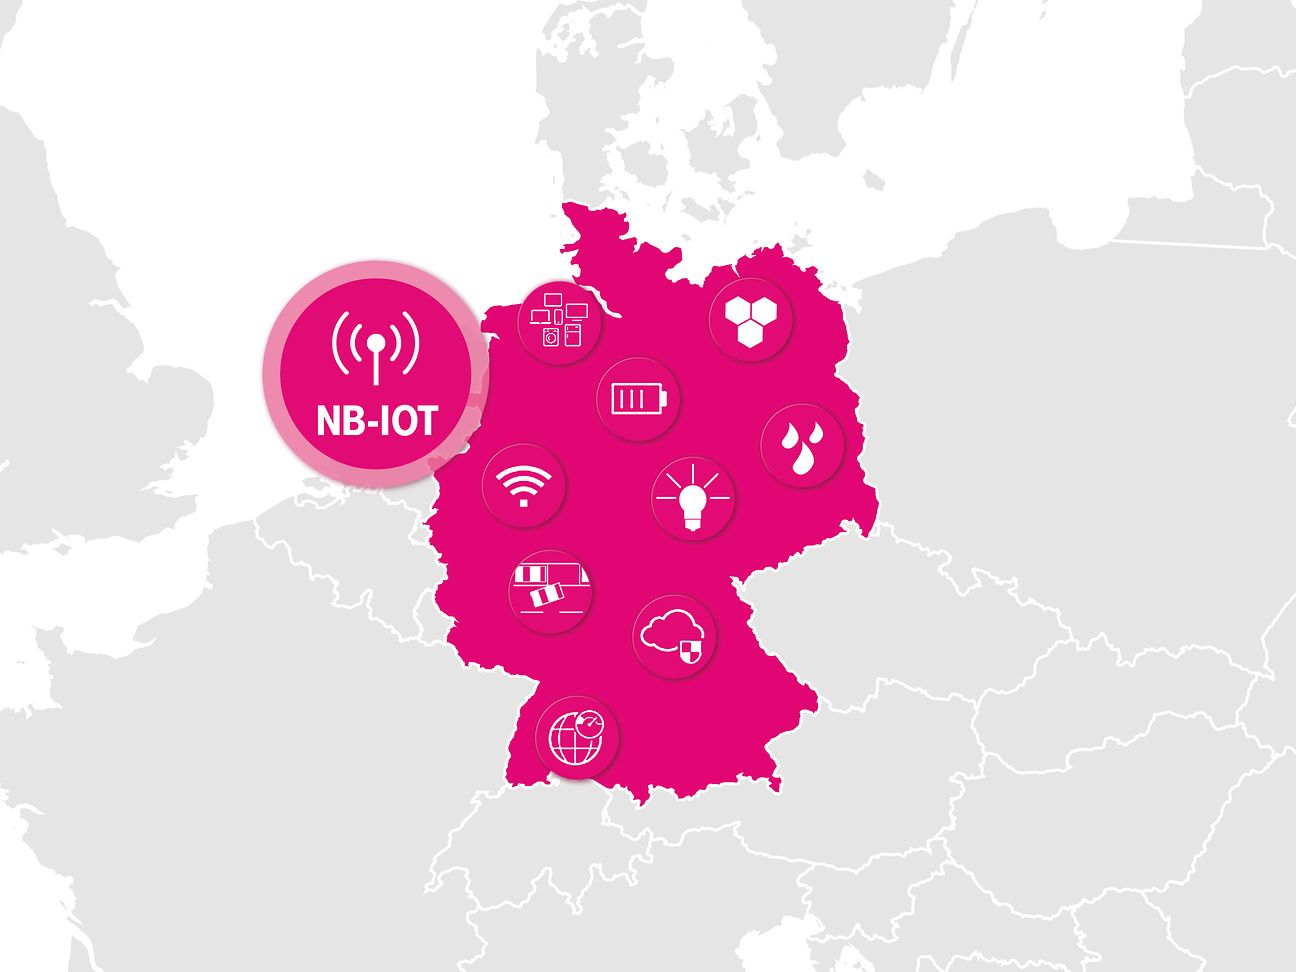 840b4d6139 First NarrowBand IoT service packages launched in Germany